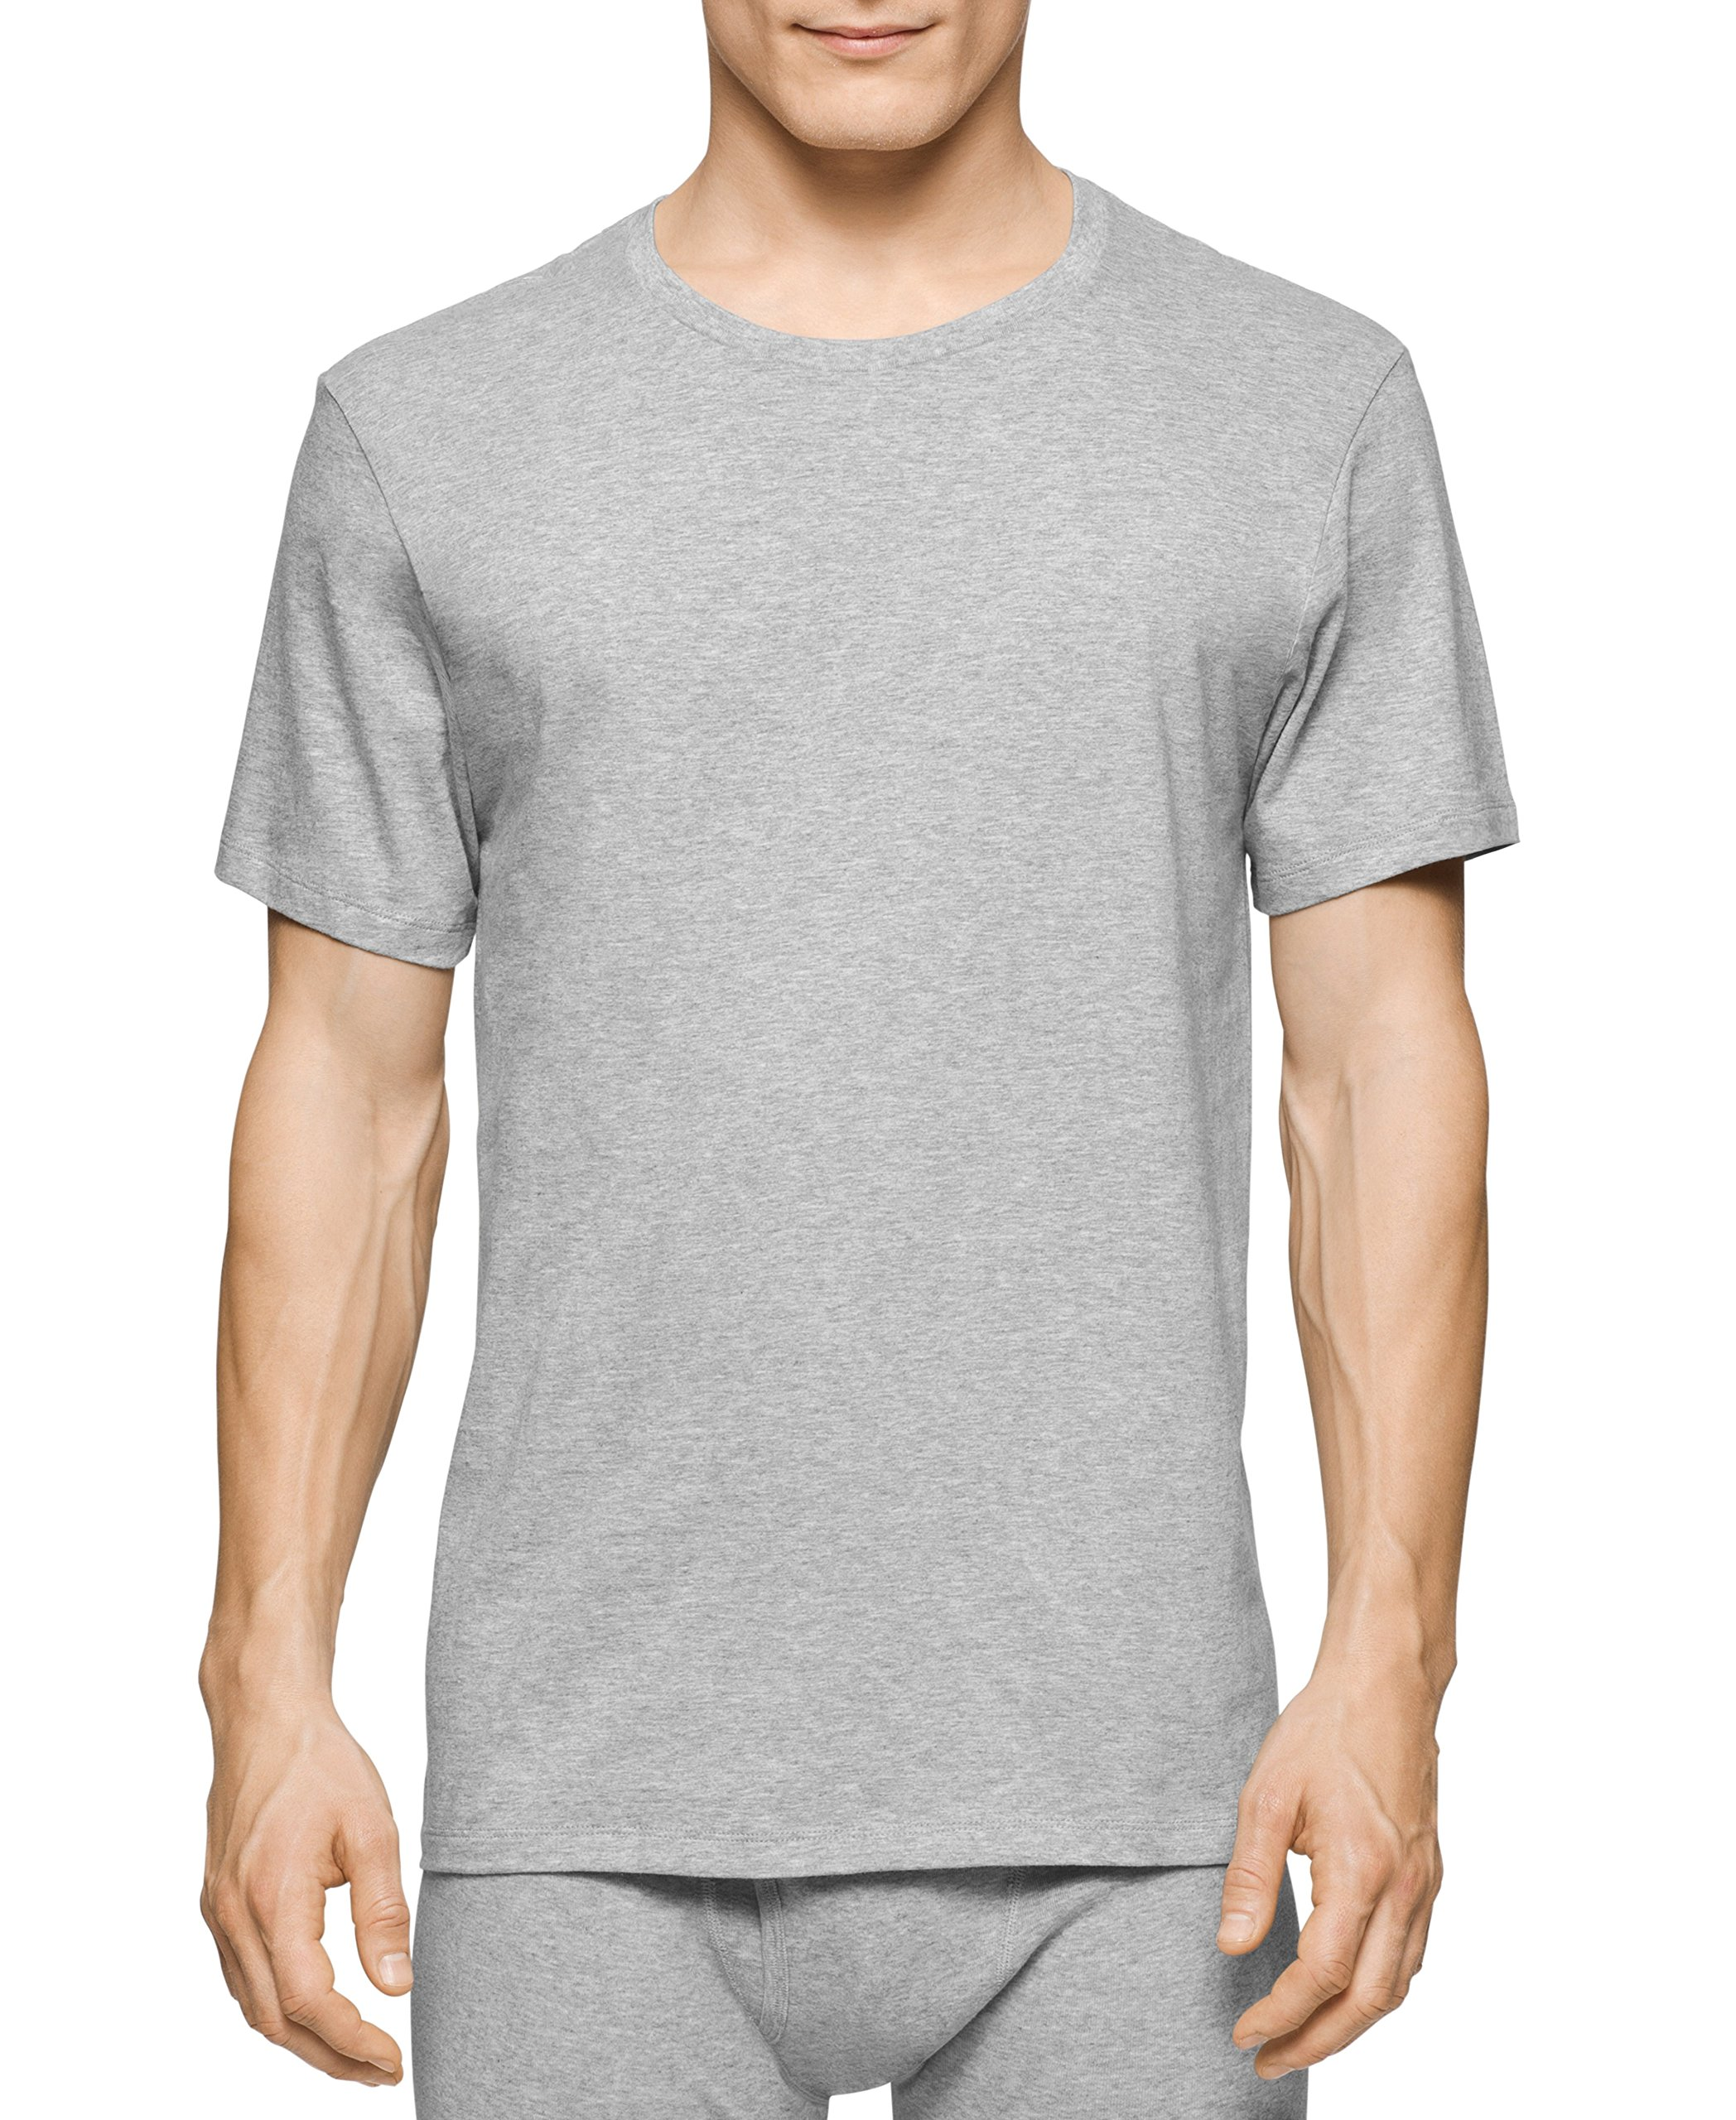 Calvin Klein Men's Undershirts Cotton Classics 3 Pack Crew Neck Tshirts,Multi,Small by Calvin Klein (Image #2)